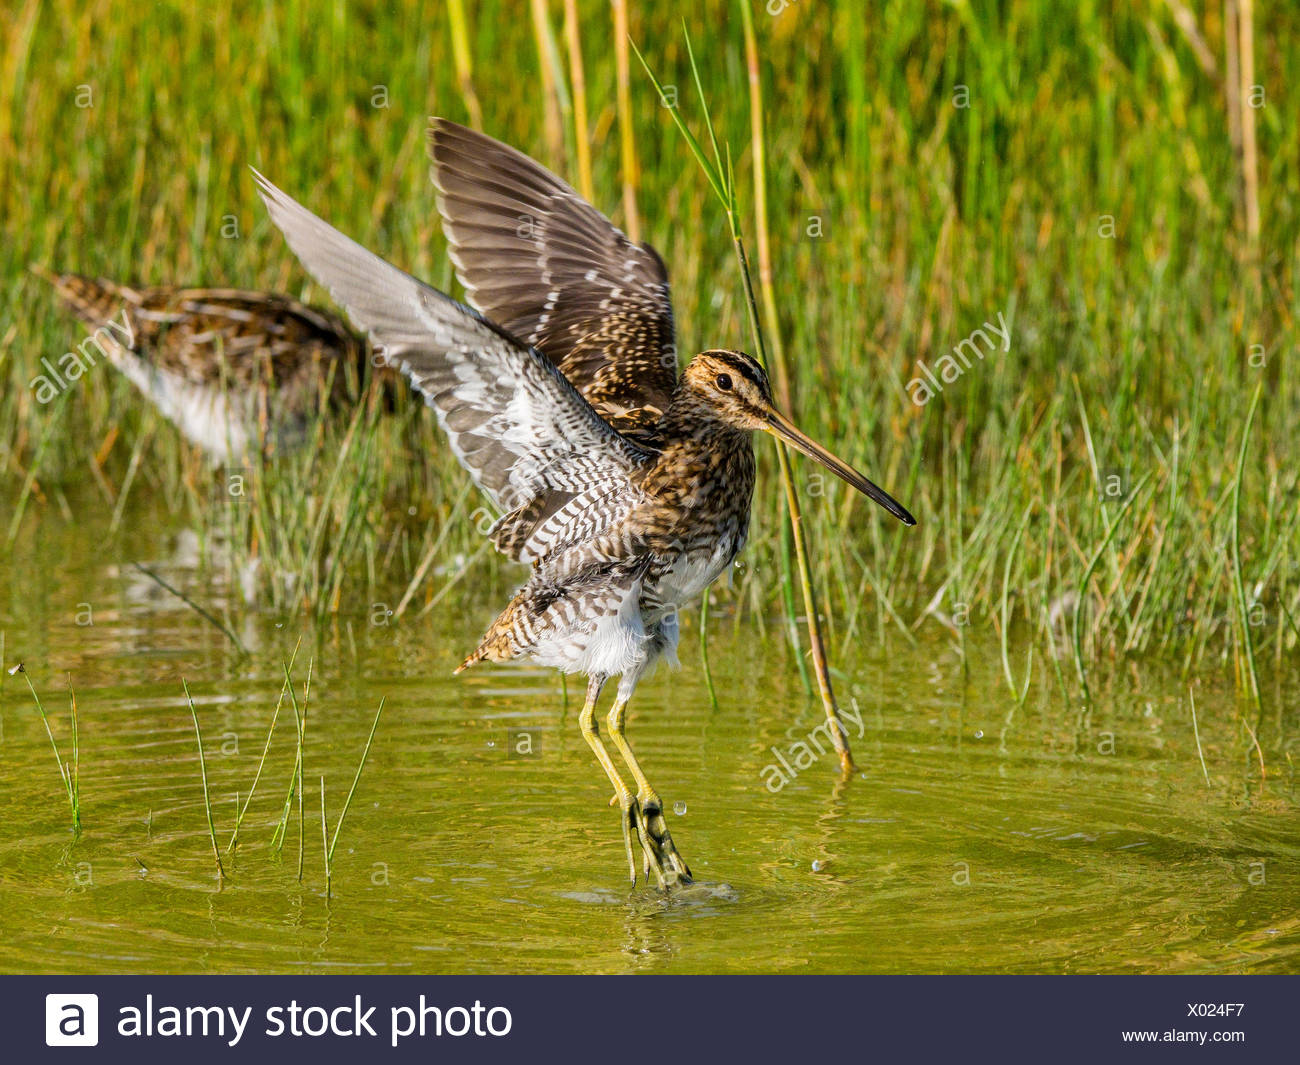 common snipe (Gallinago gallinago), in shalow water bathing adult bird flapping wings, Germany - Stock Image